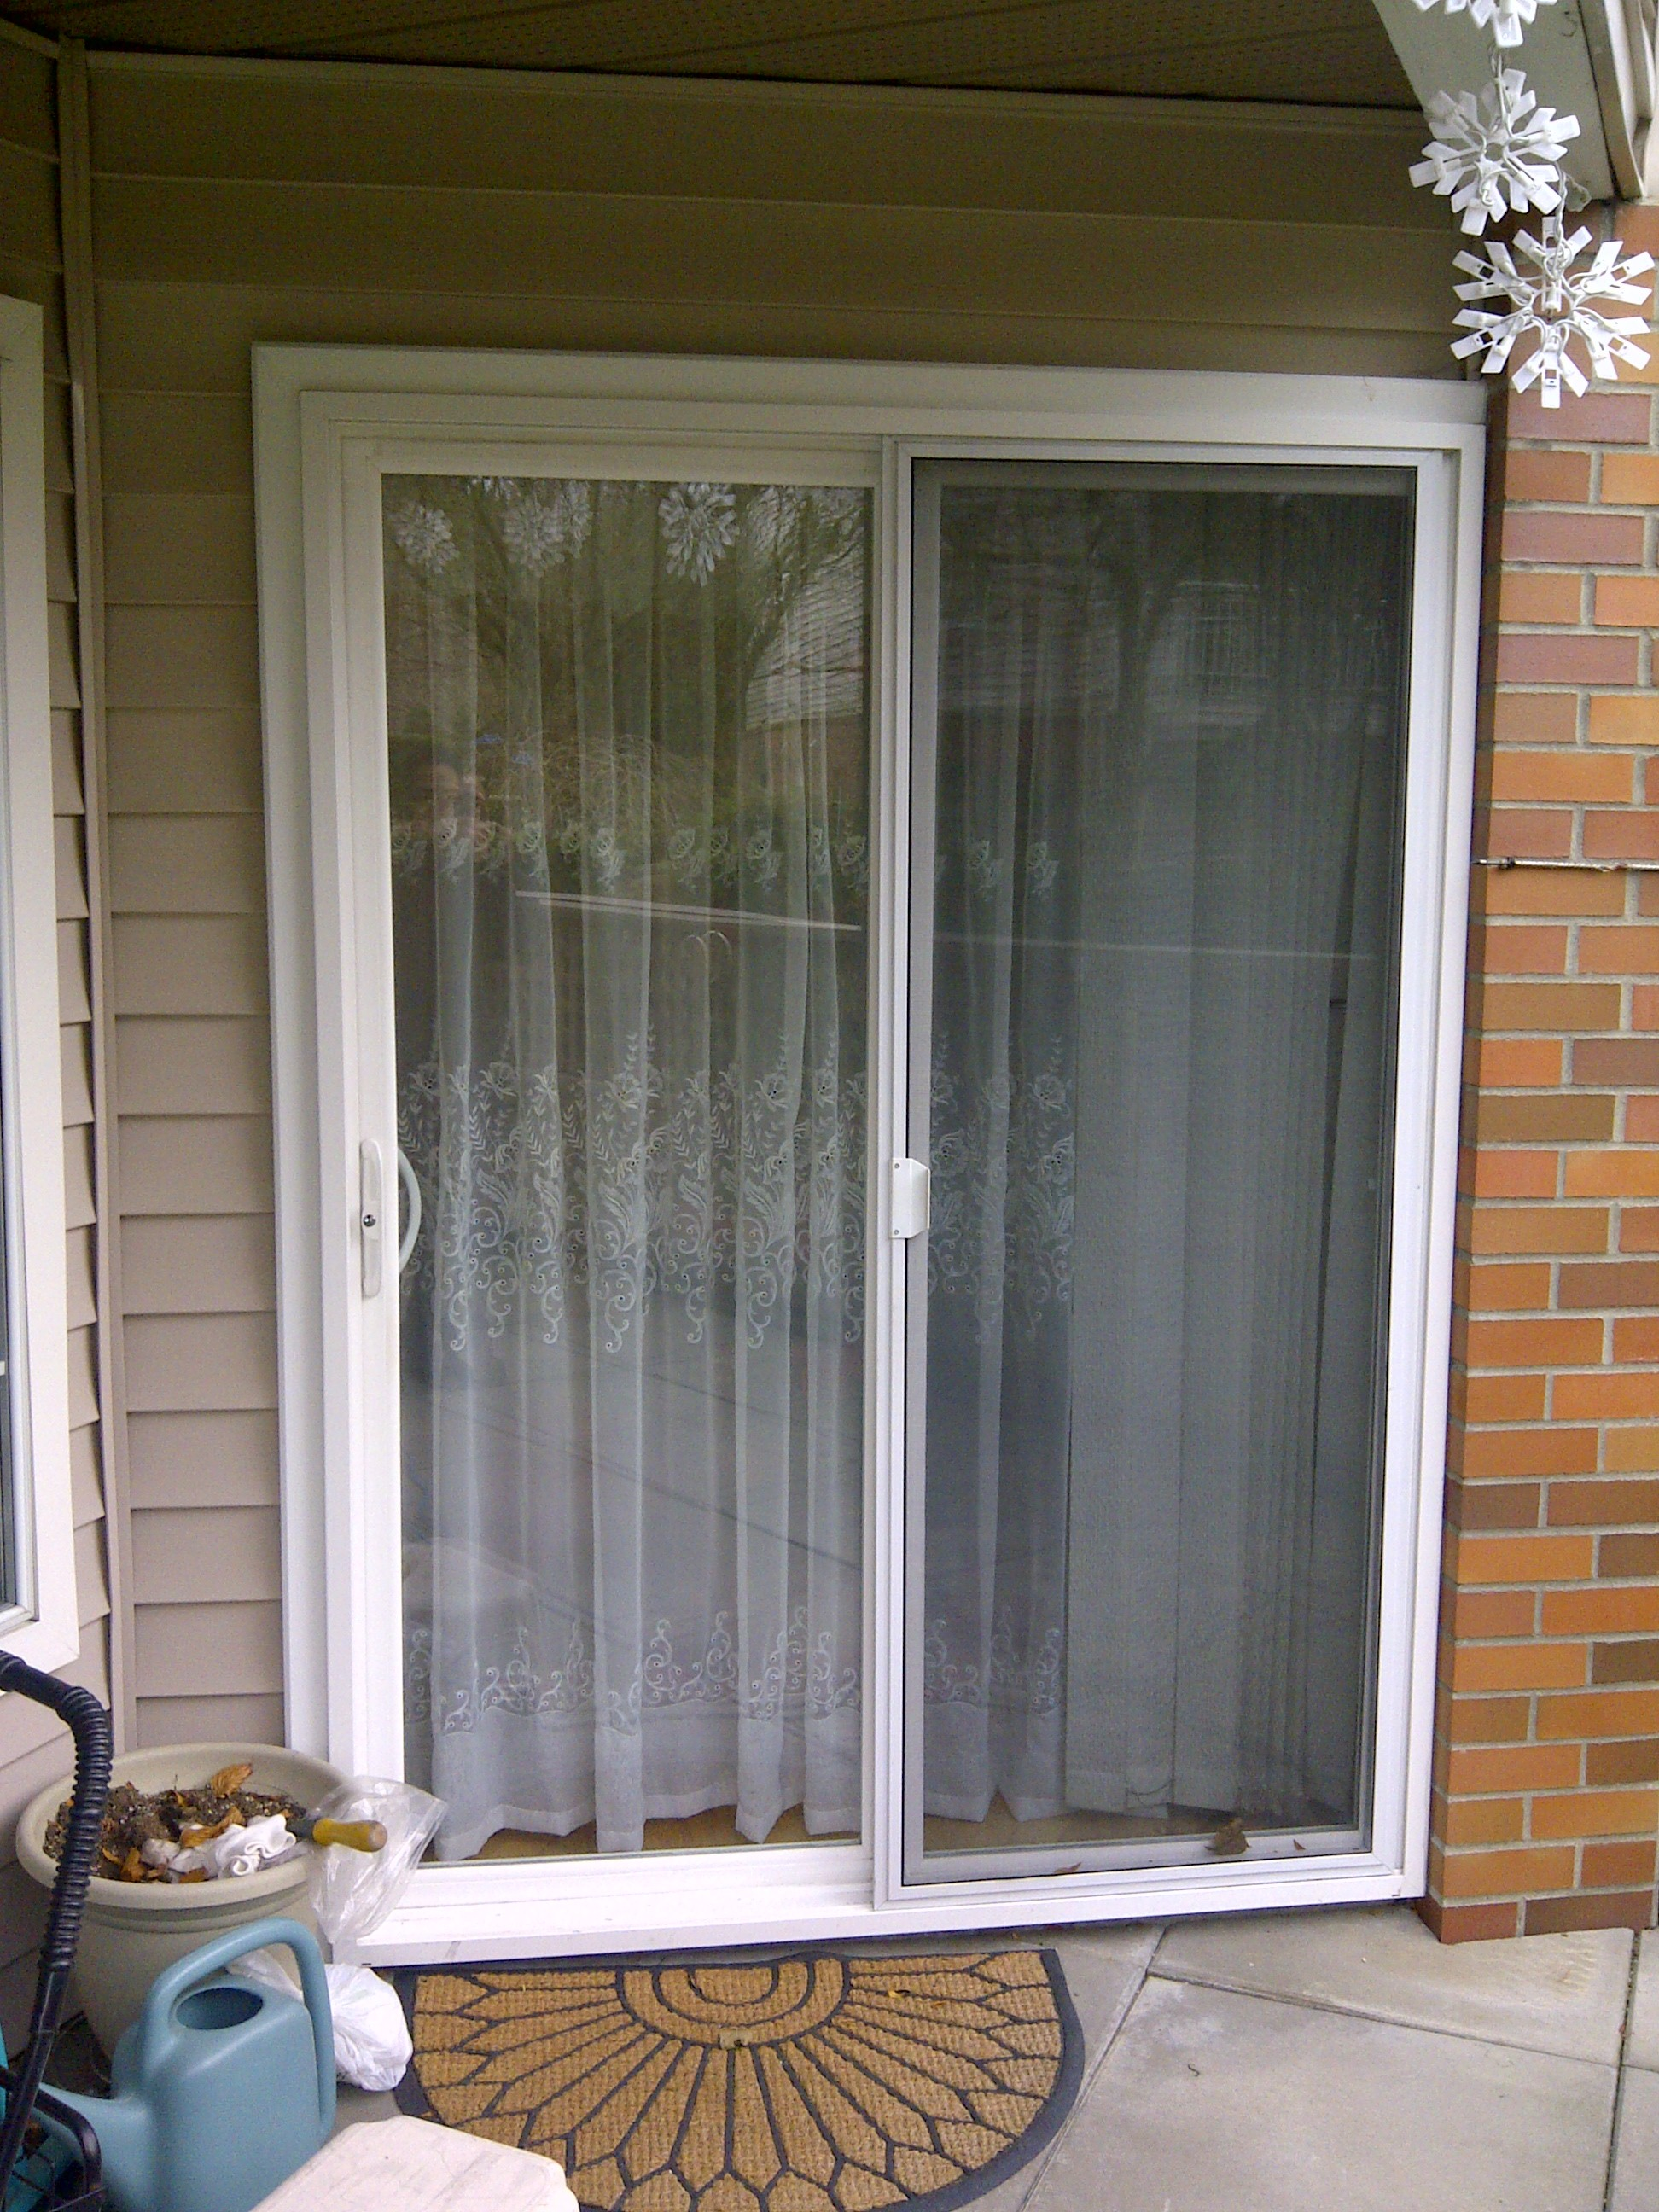 vancouver glass door company work with us to design a custom glass door system that once it is